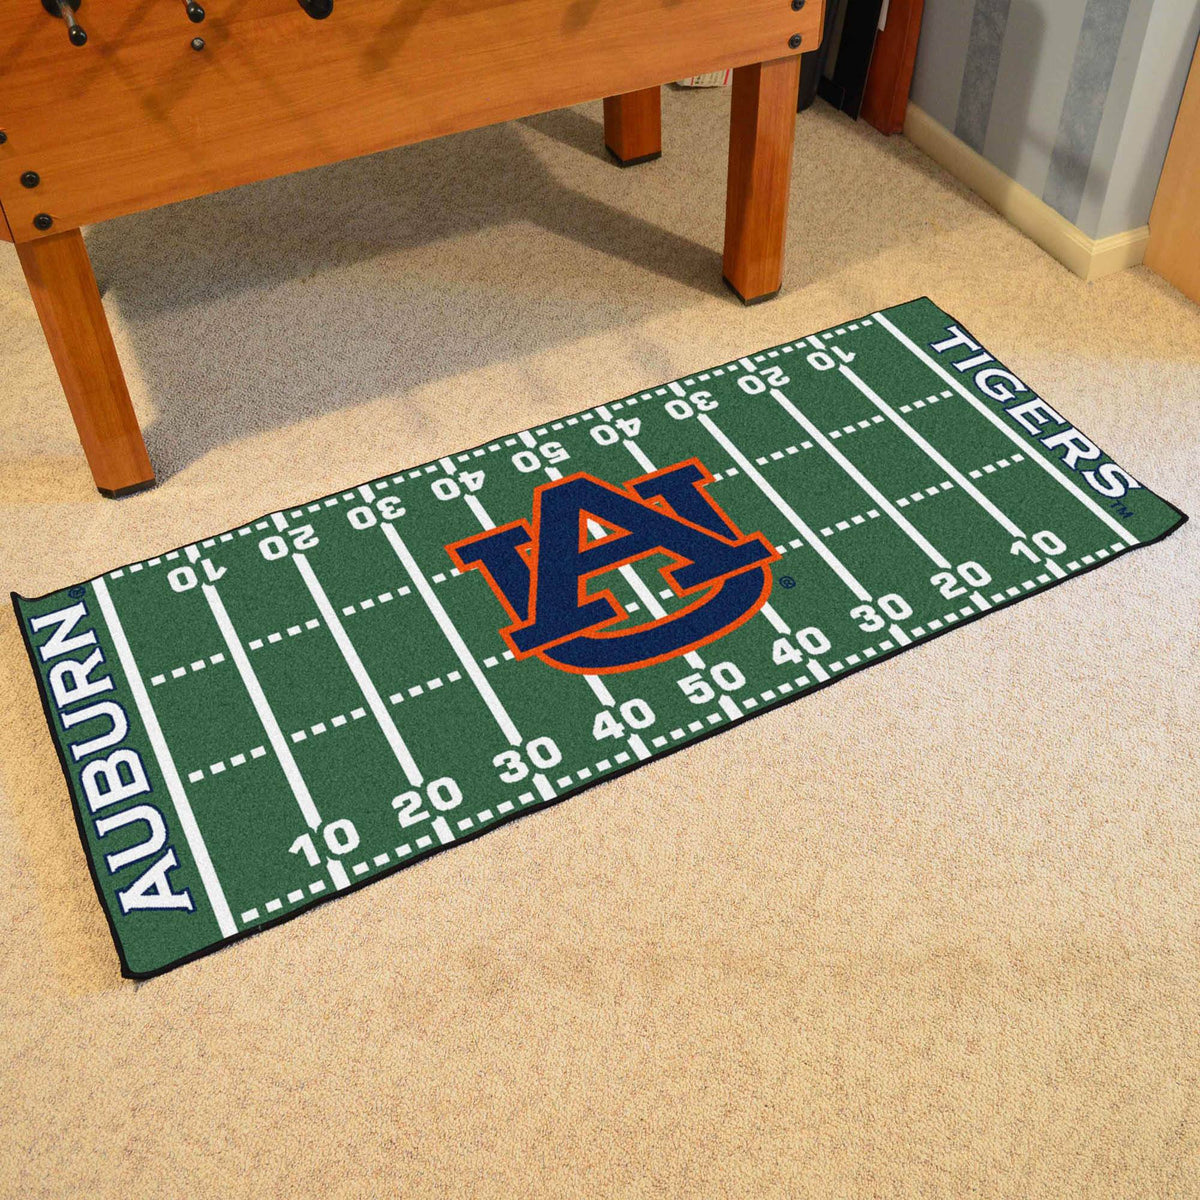 Collegiate - Football Field Runner Collegiate Mats, Rectangular Mats, Football Field Runner, Collegiate, Home Fan Mats Auburn 2